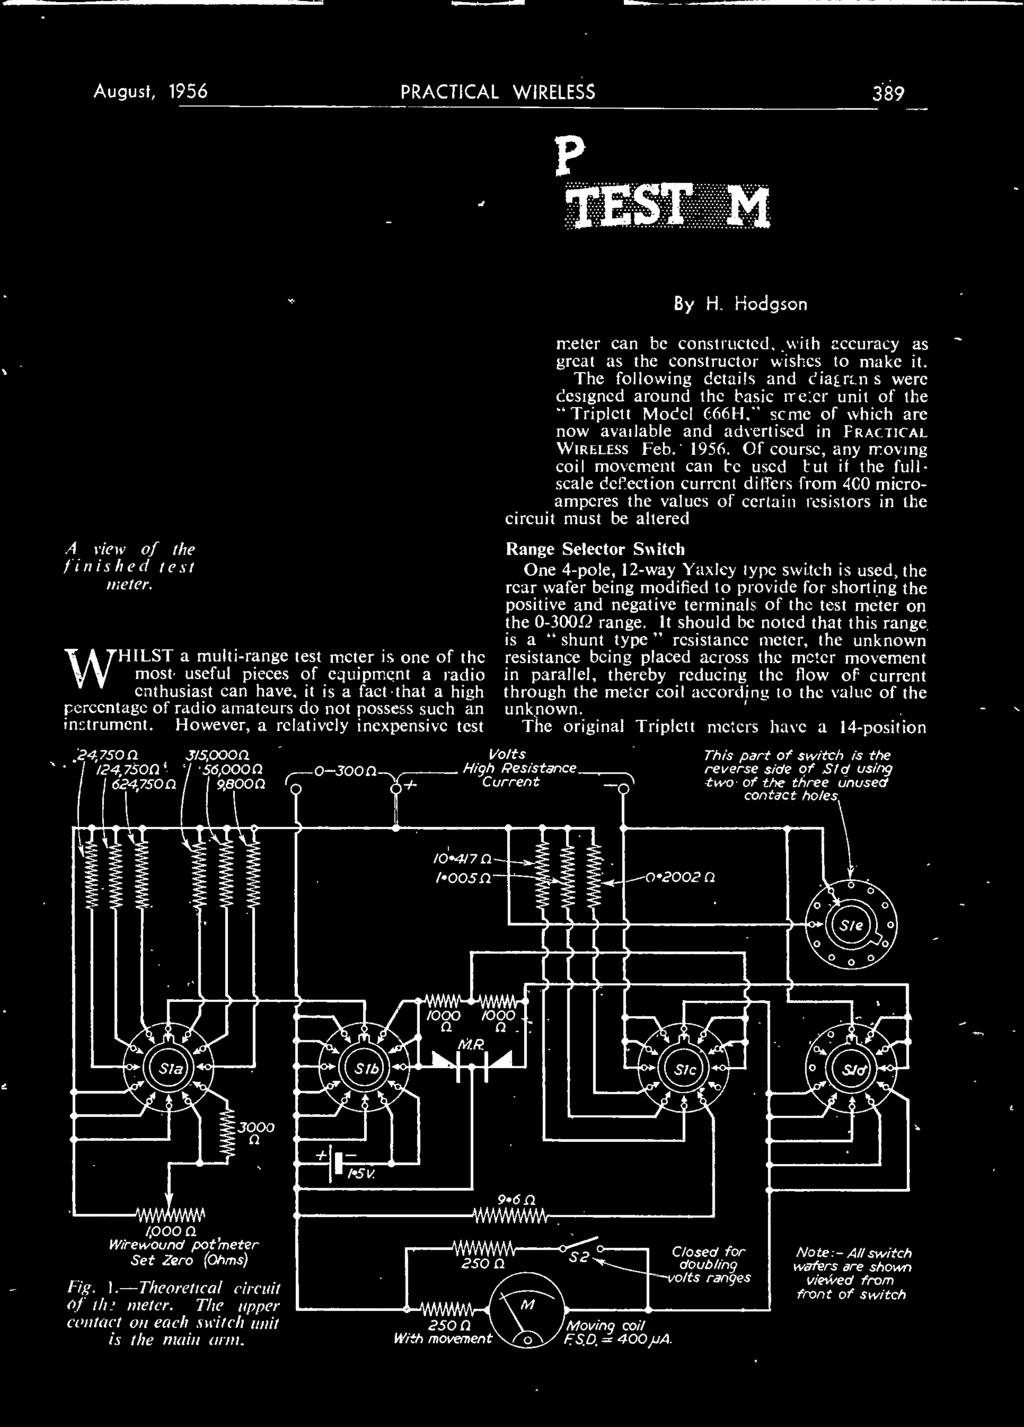 A Transistor Diode Portable Pdf Ignition Circuit Diagram For The 1951 54 Packard All Models However Relatively Inexpensive Test 247500 3150000 124